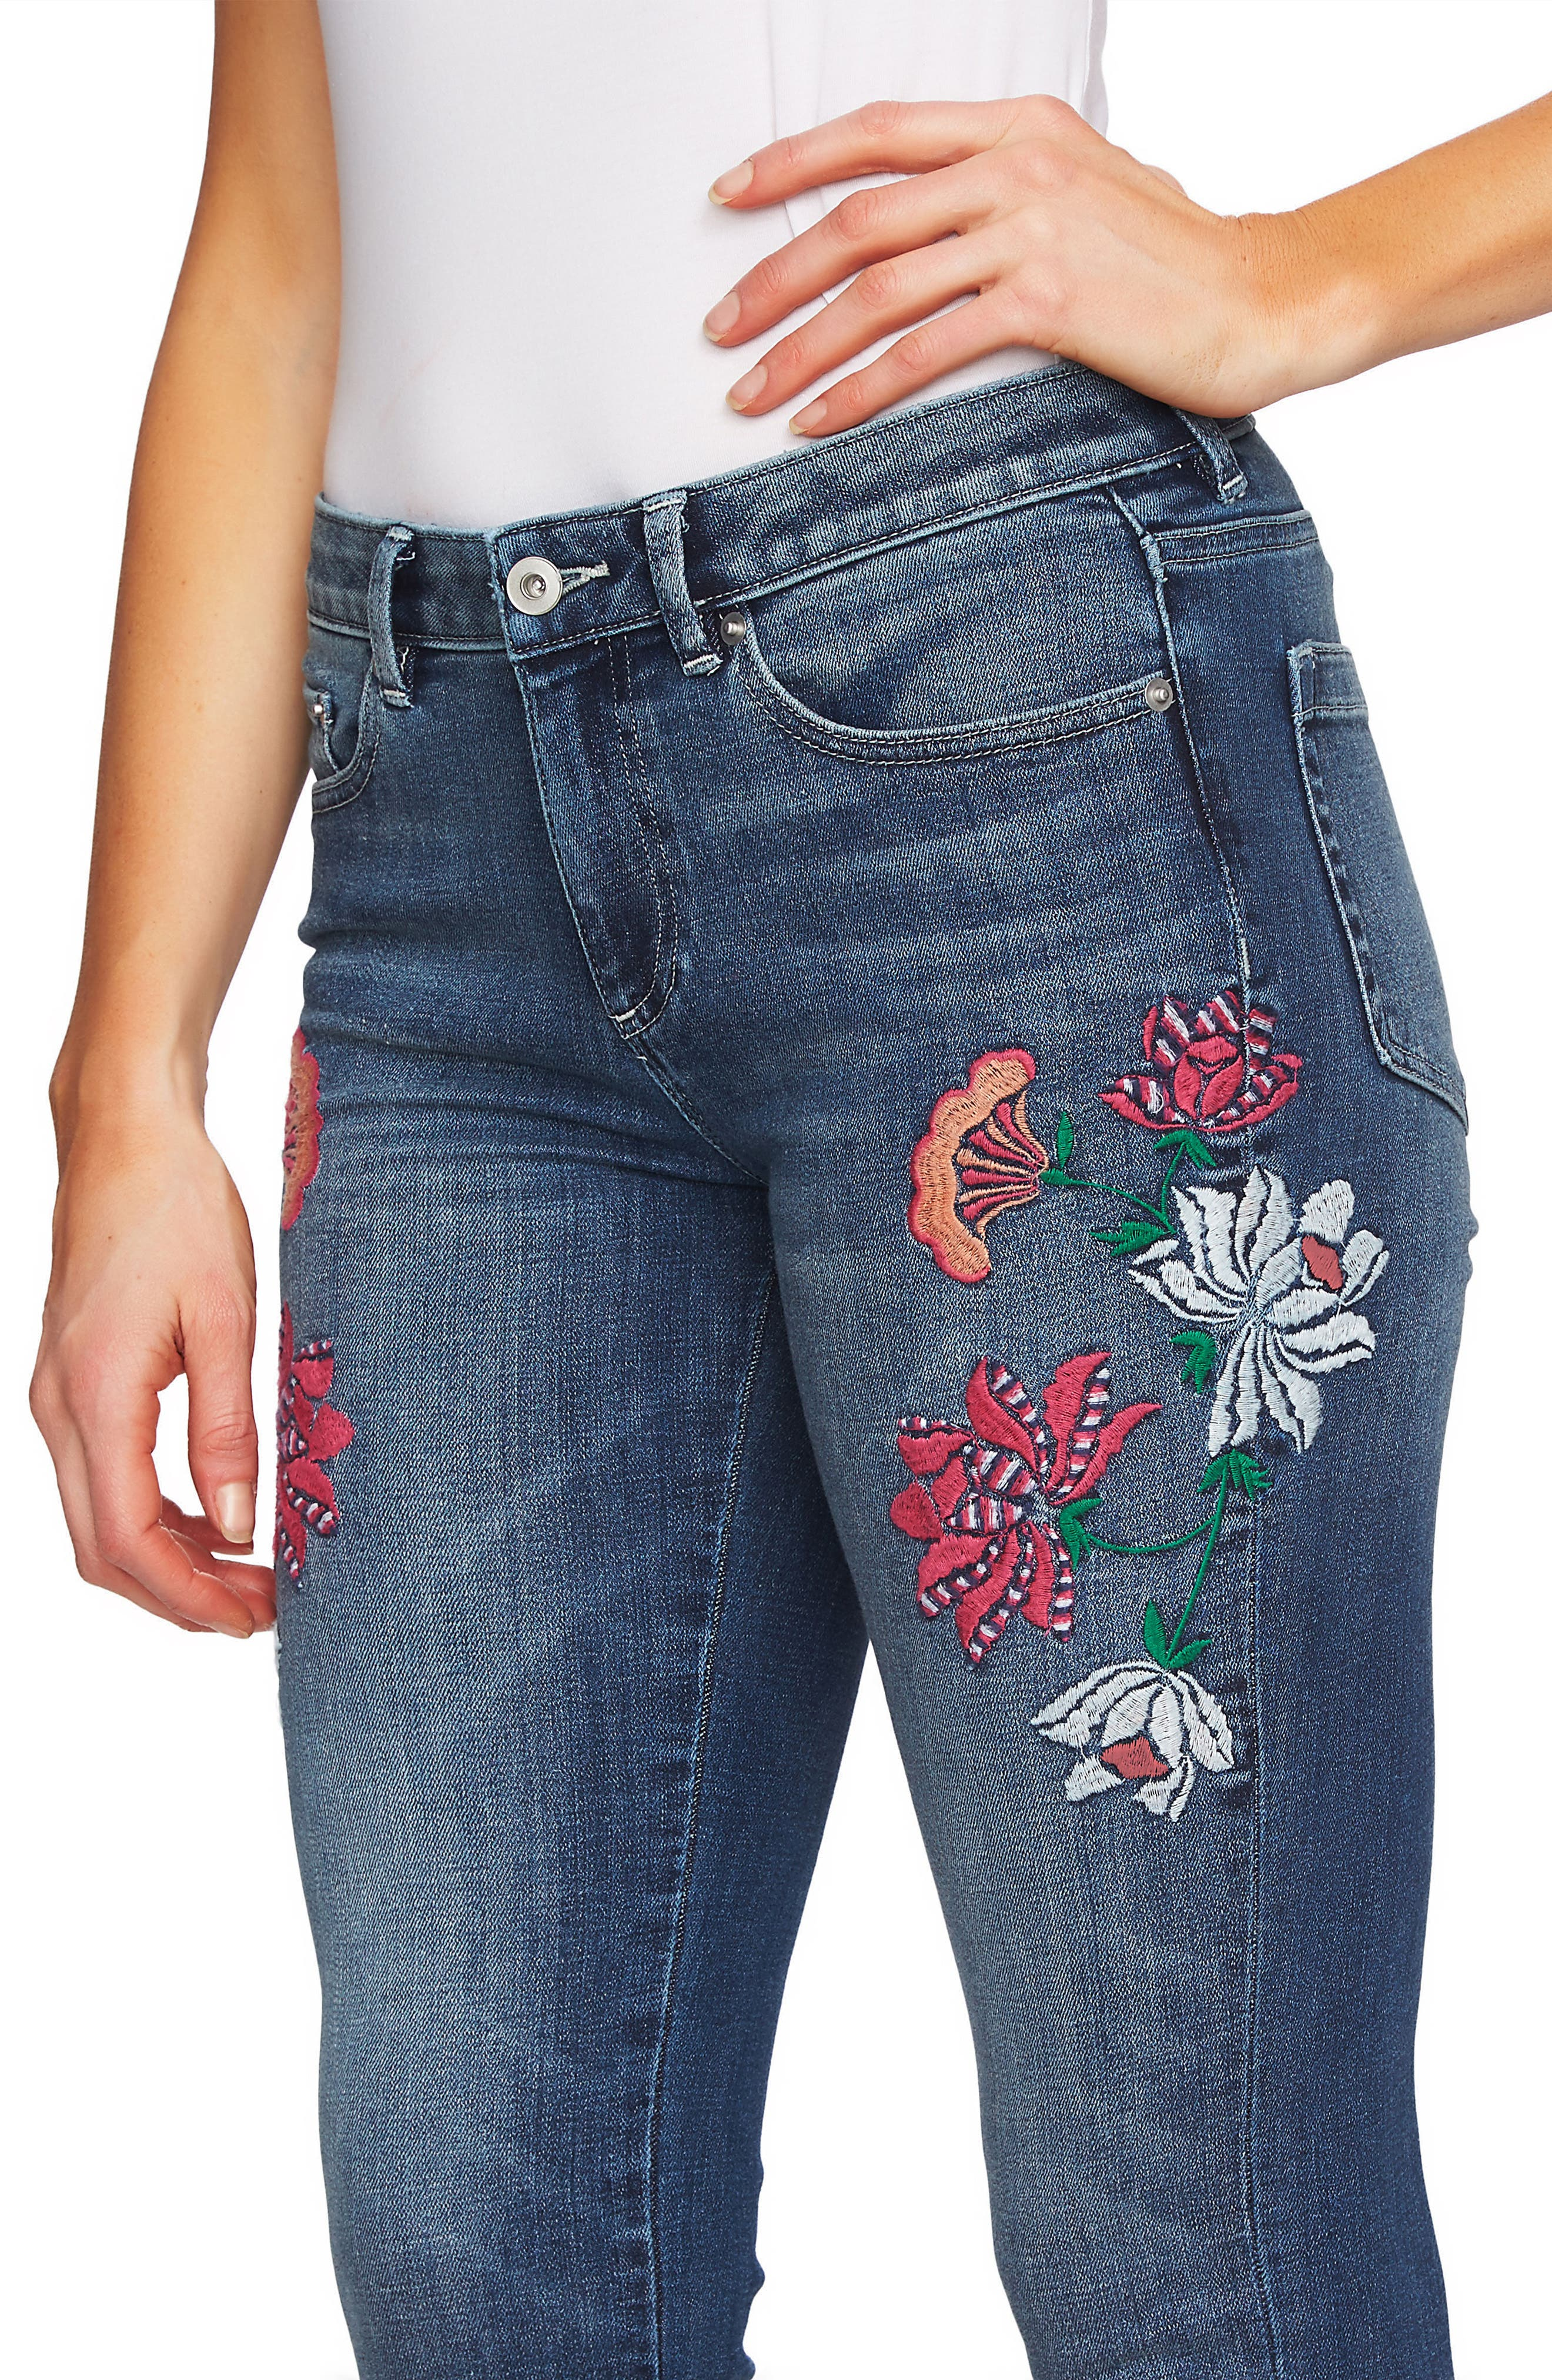 Floral Embroidery Skinny Jeans,                             Alternate thumbnail 4, color,